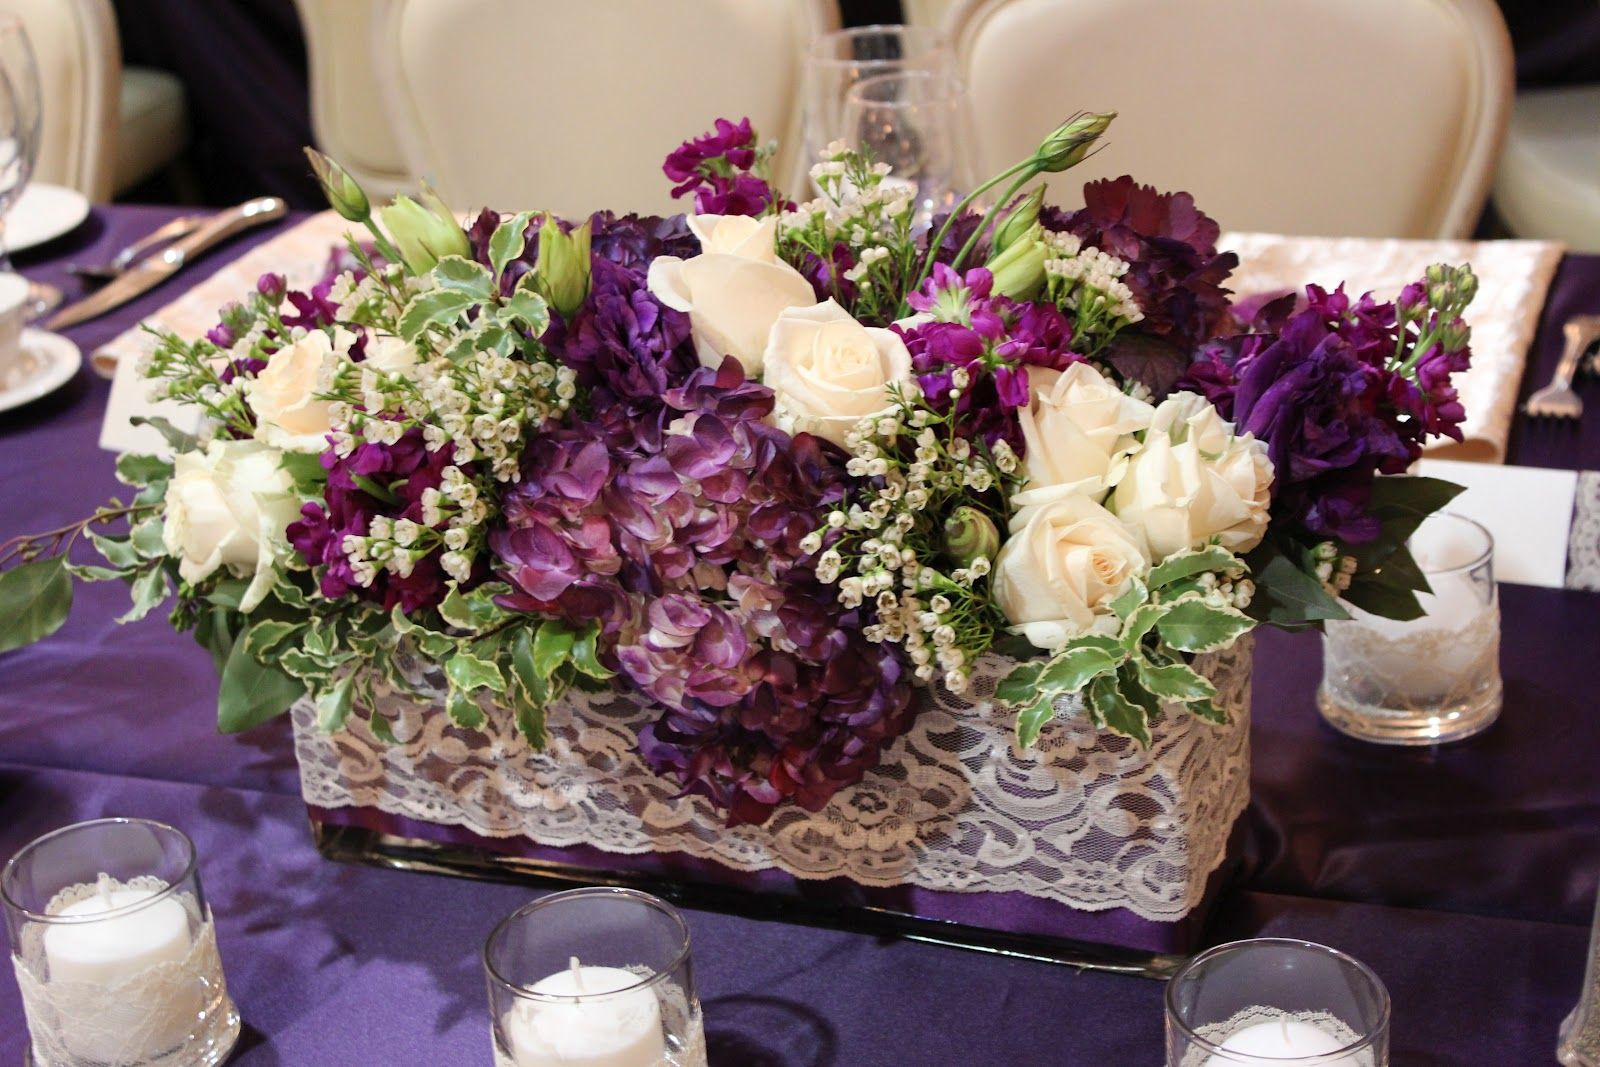 Round Wedding Table Flowers Eggplant Tall Arrangements With Calla Lily S Green Hanging Amaranthus